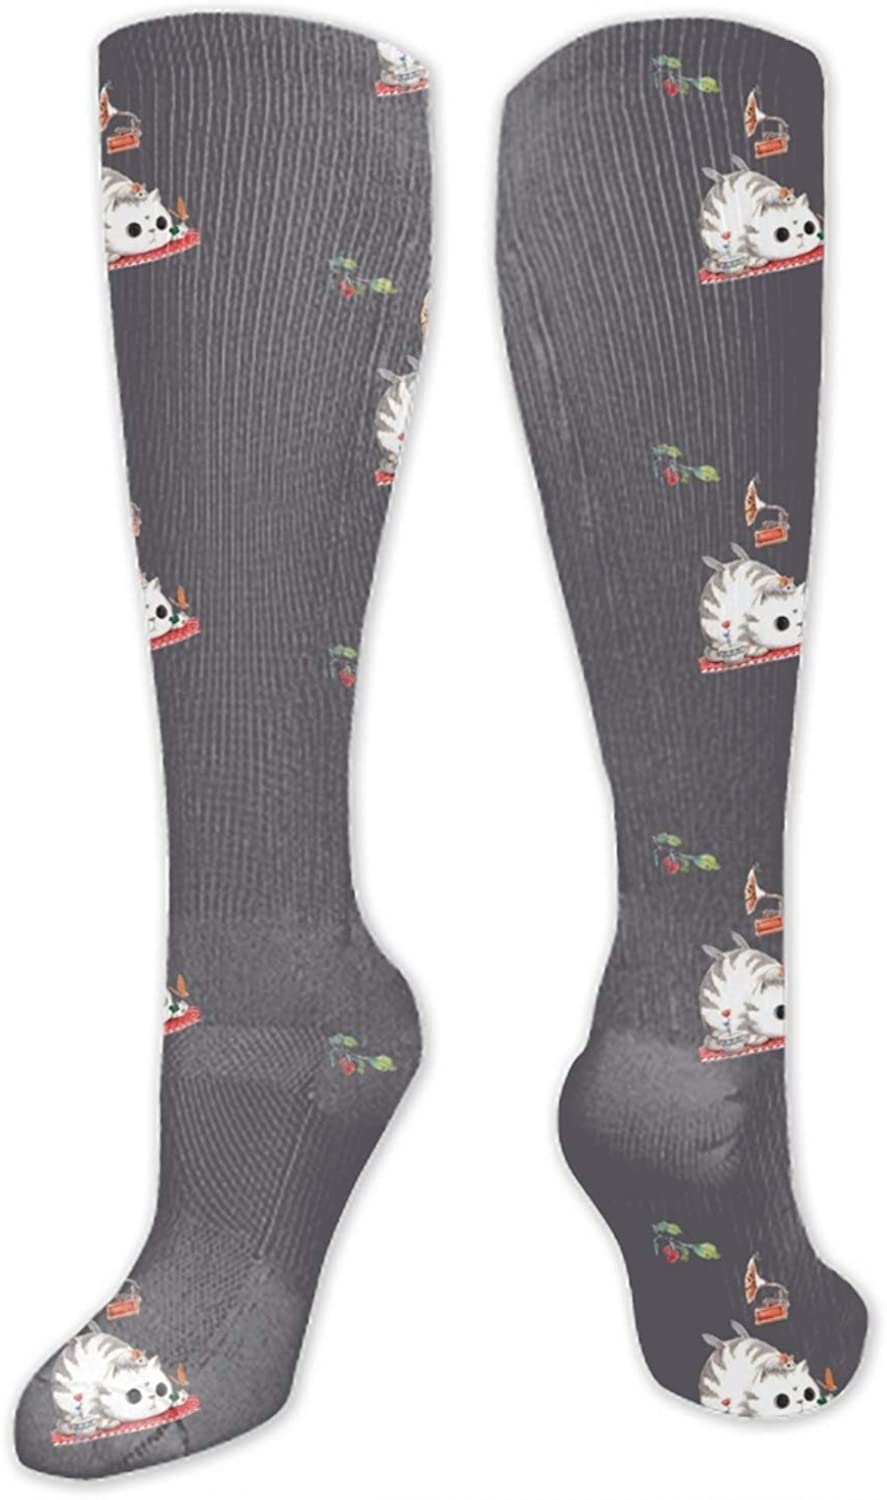 Black And White Puffin Bird Men /& Women Art Patterned Casual High Socks